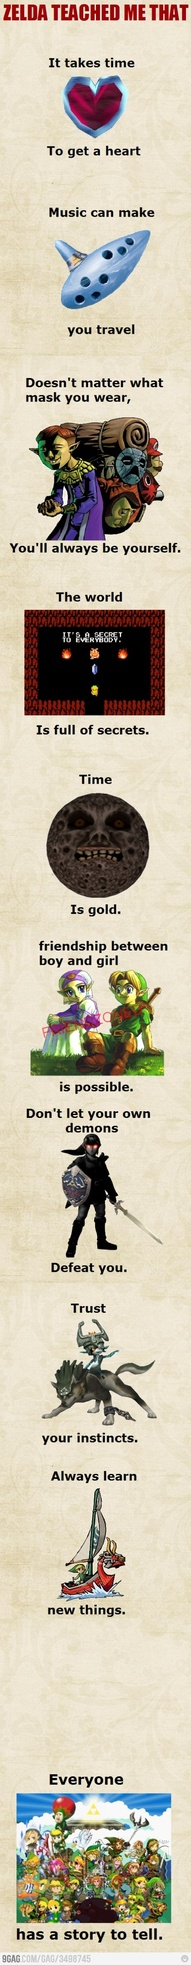 just......legend of zelda... It has a lesson and it is beautiful